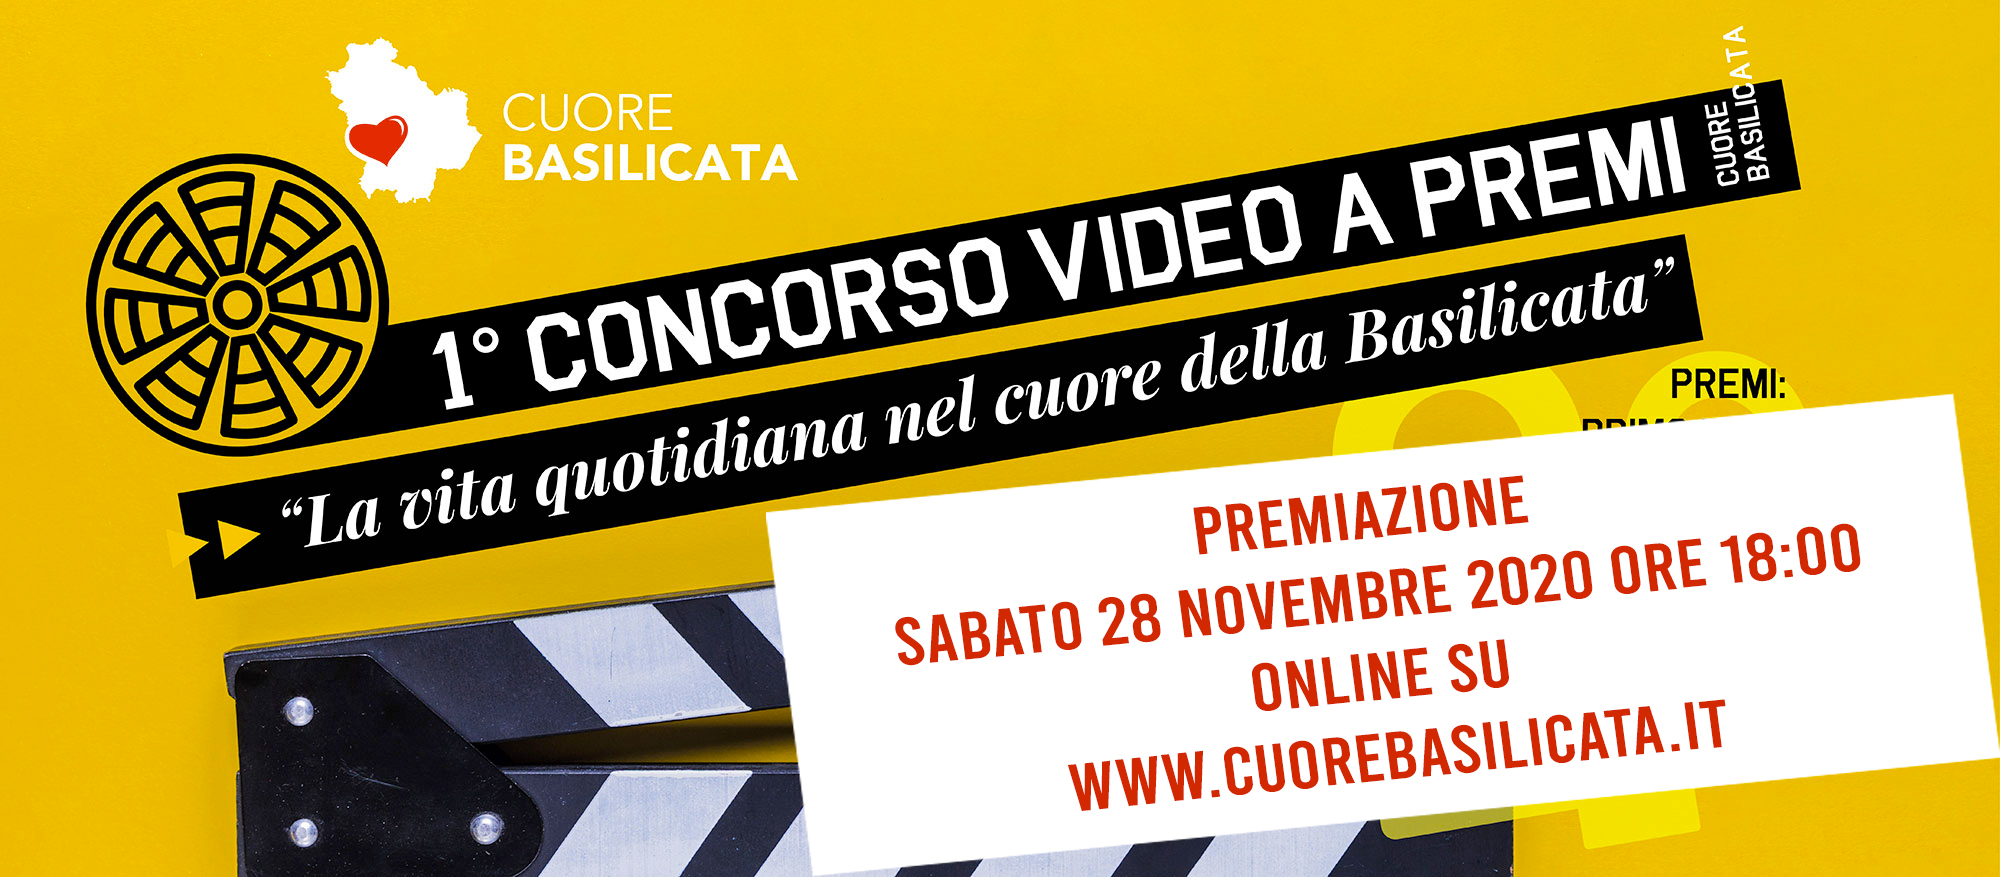 https://www.cuorebasilicata.it/wp-content/uploads/2020/11/CONCORSO-VIDEO-Banner-.jpg